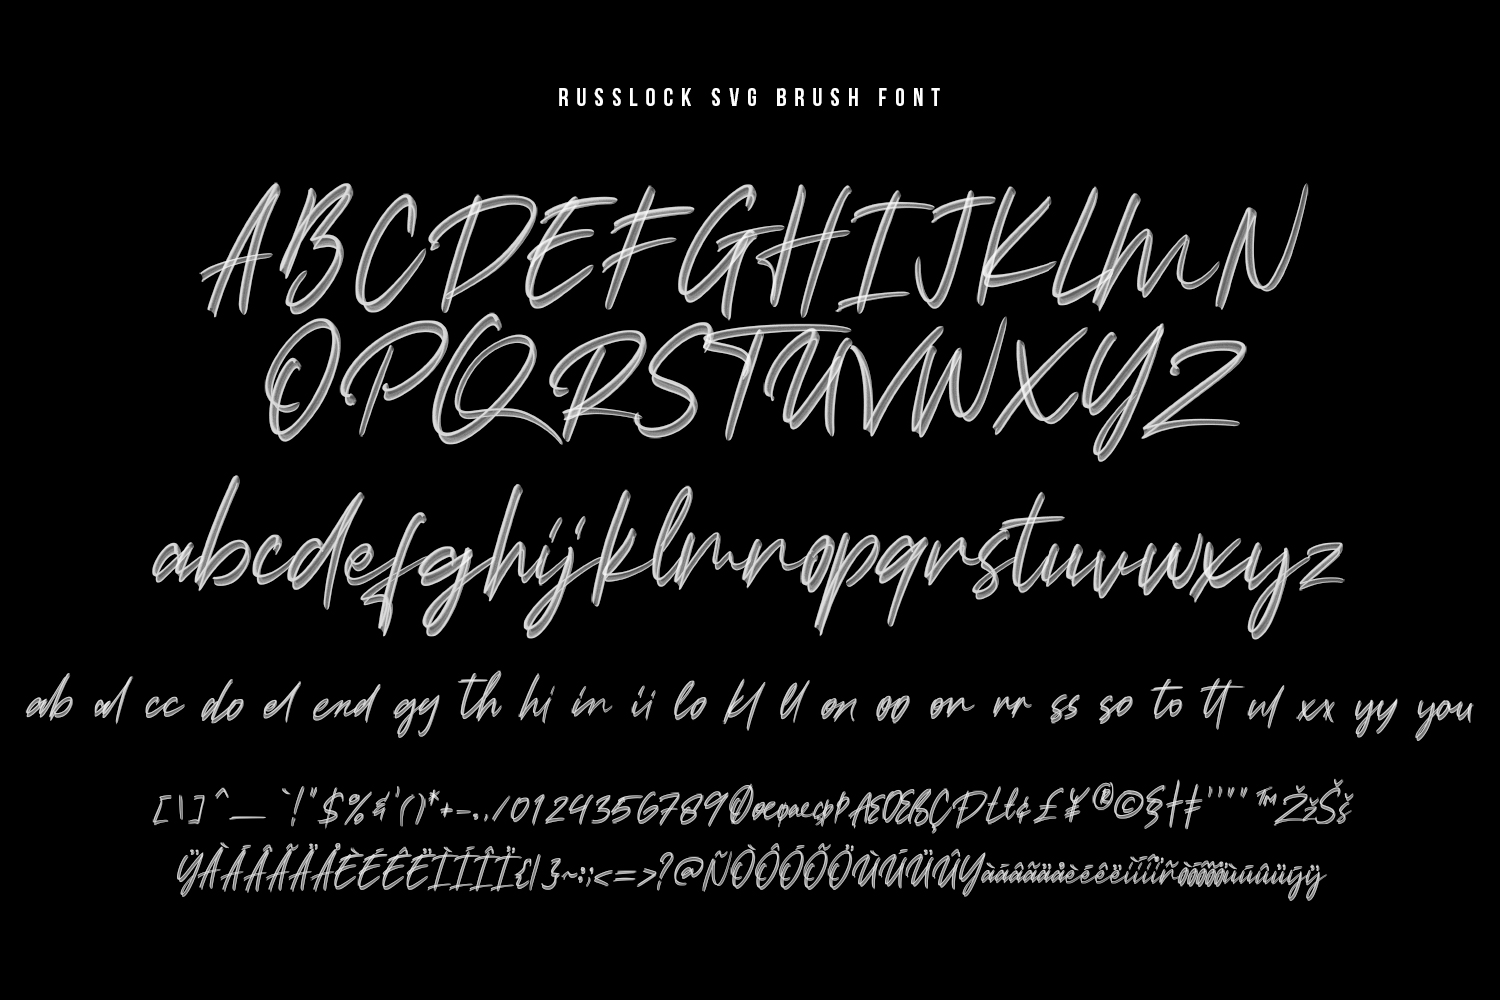 Russlock SVG Brush Font example image 14